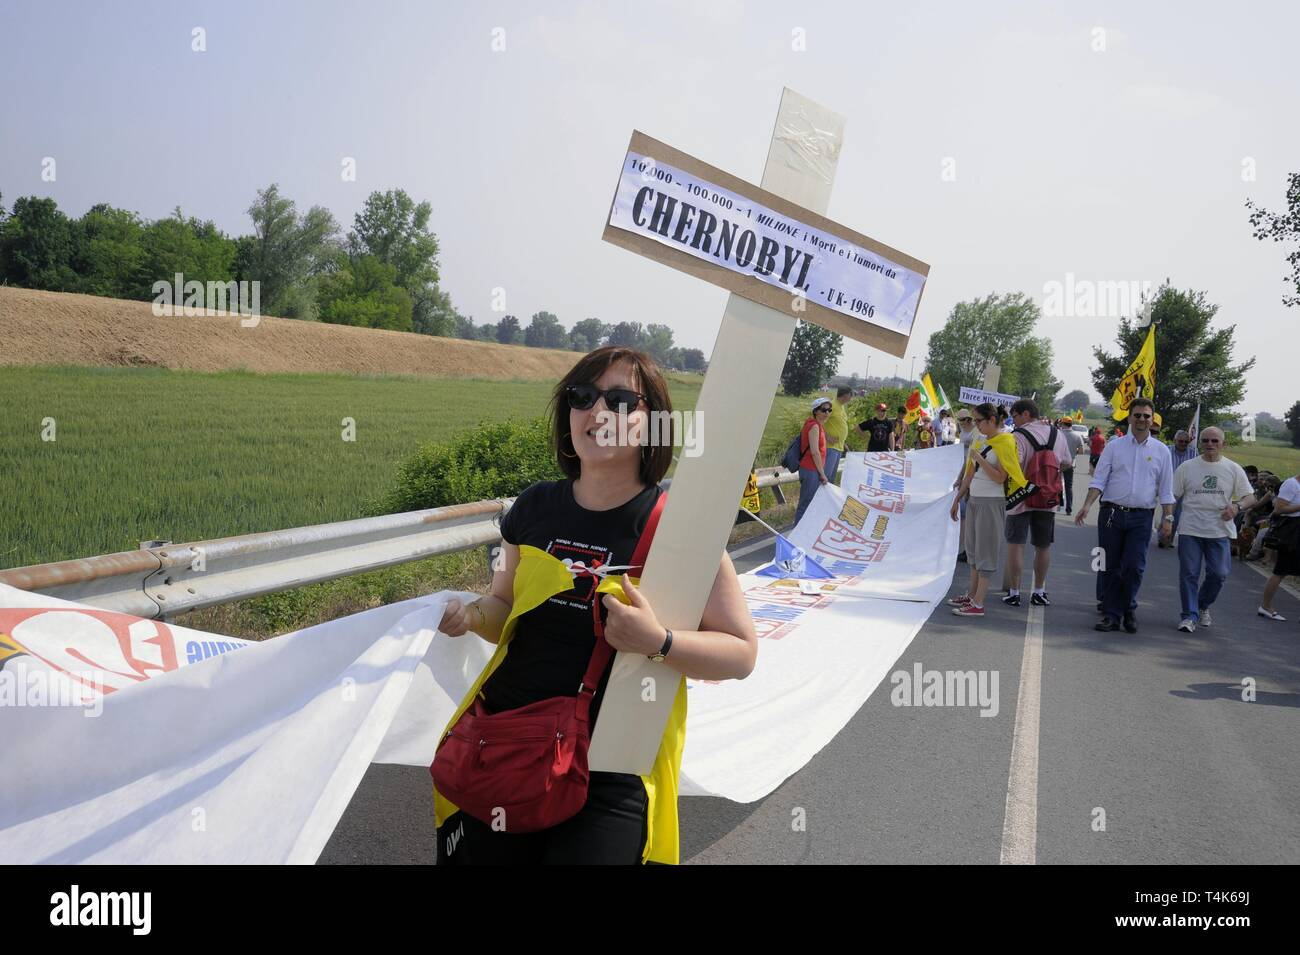 Caorso (Italy), demonstration at the nuclear power  plant site in support for the popular referendum against nuclear power and the privatization of water, May 2011 - Stock Image